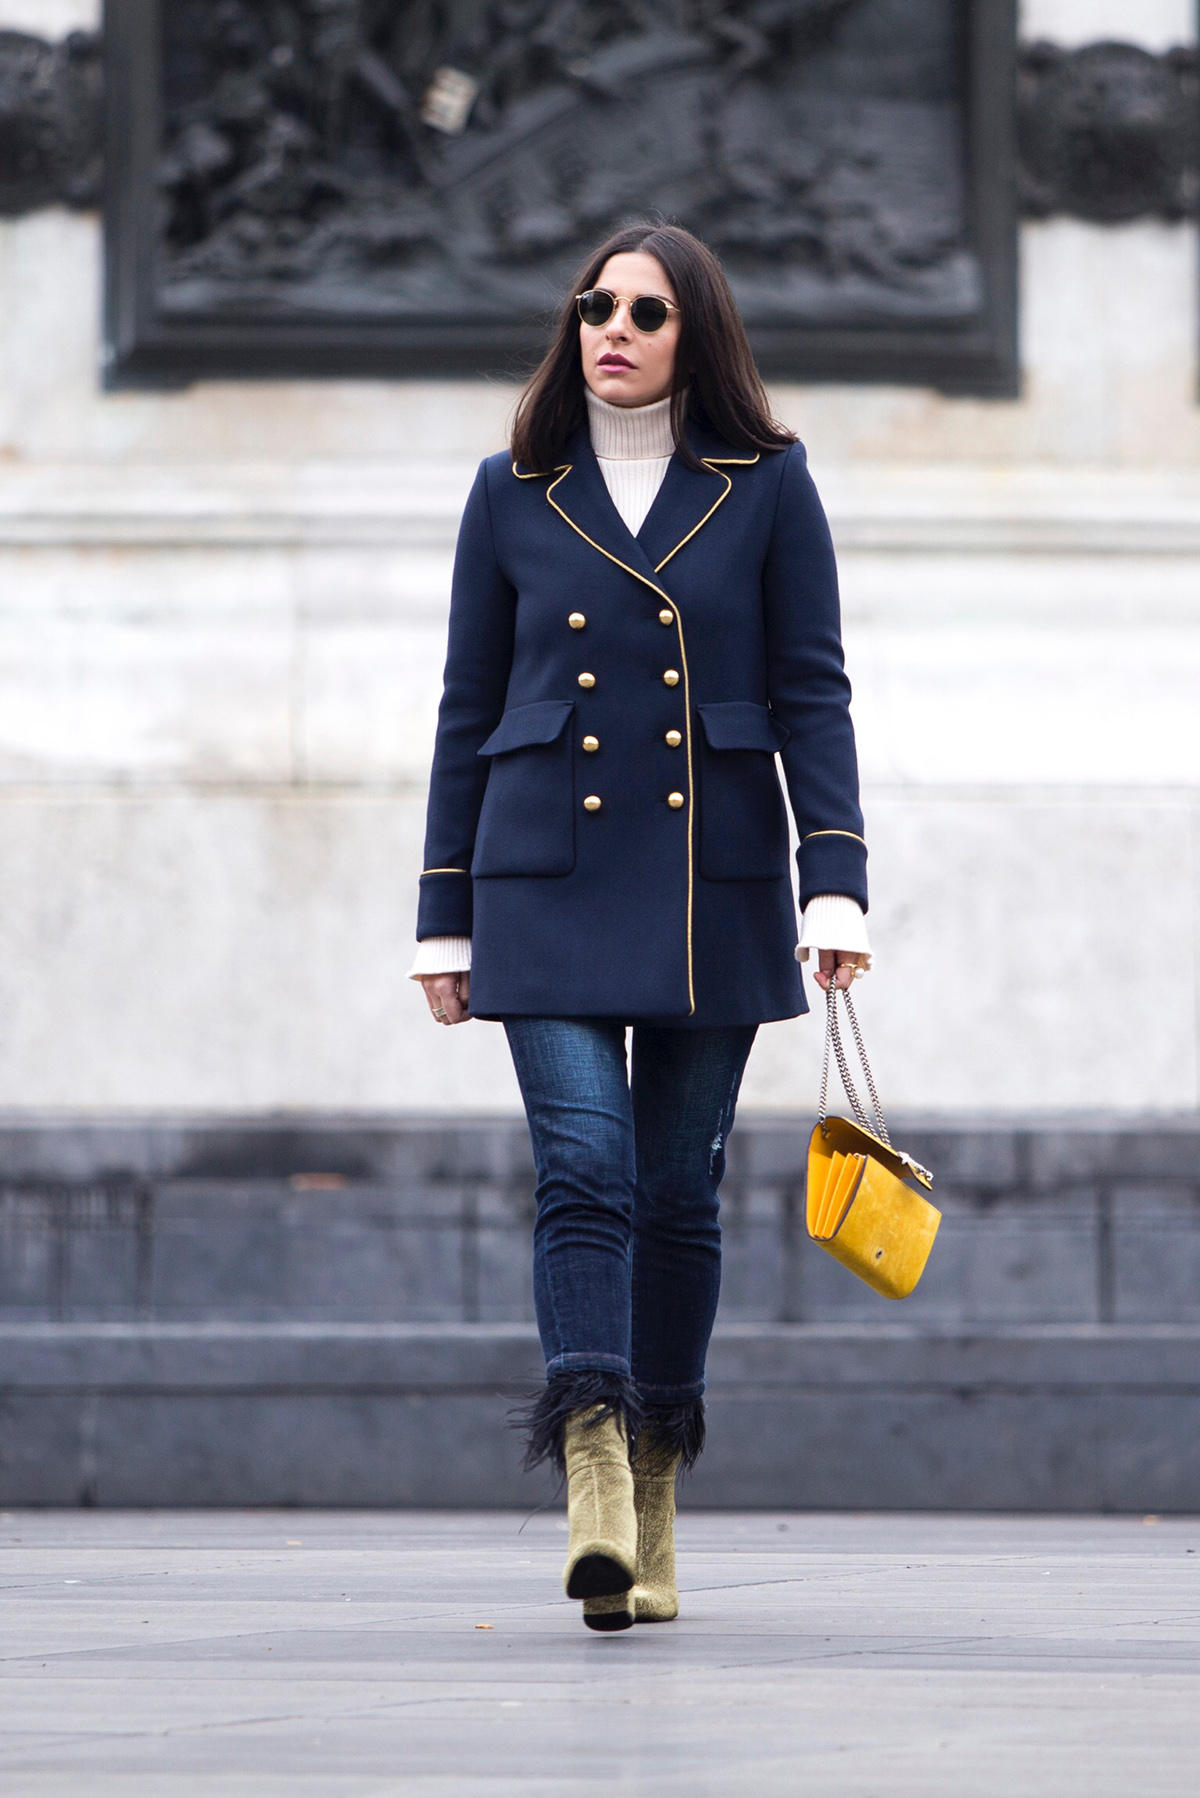 Stella Asteria wearing military coat from Pinko in Paris